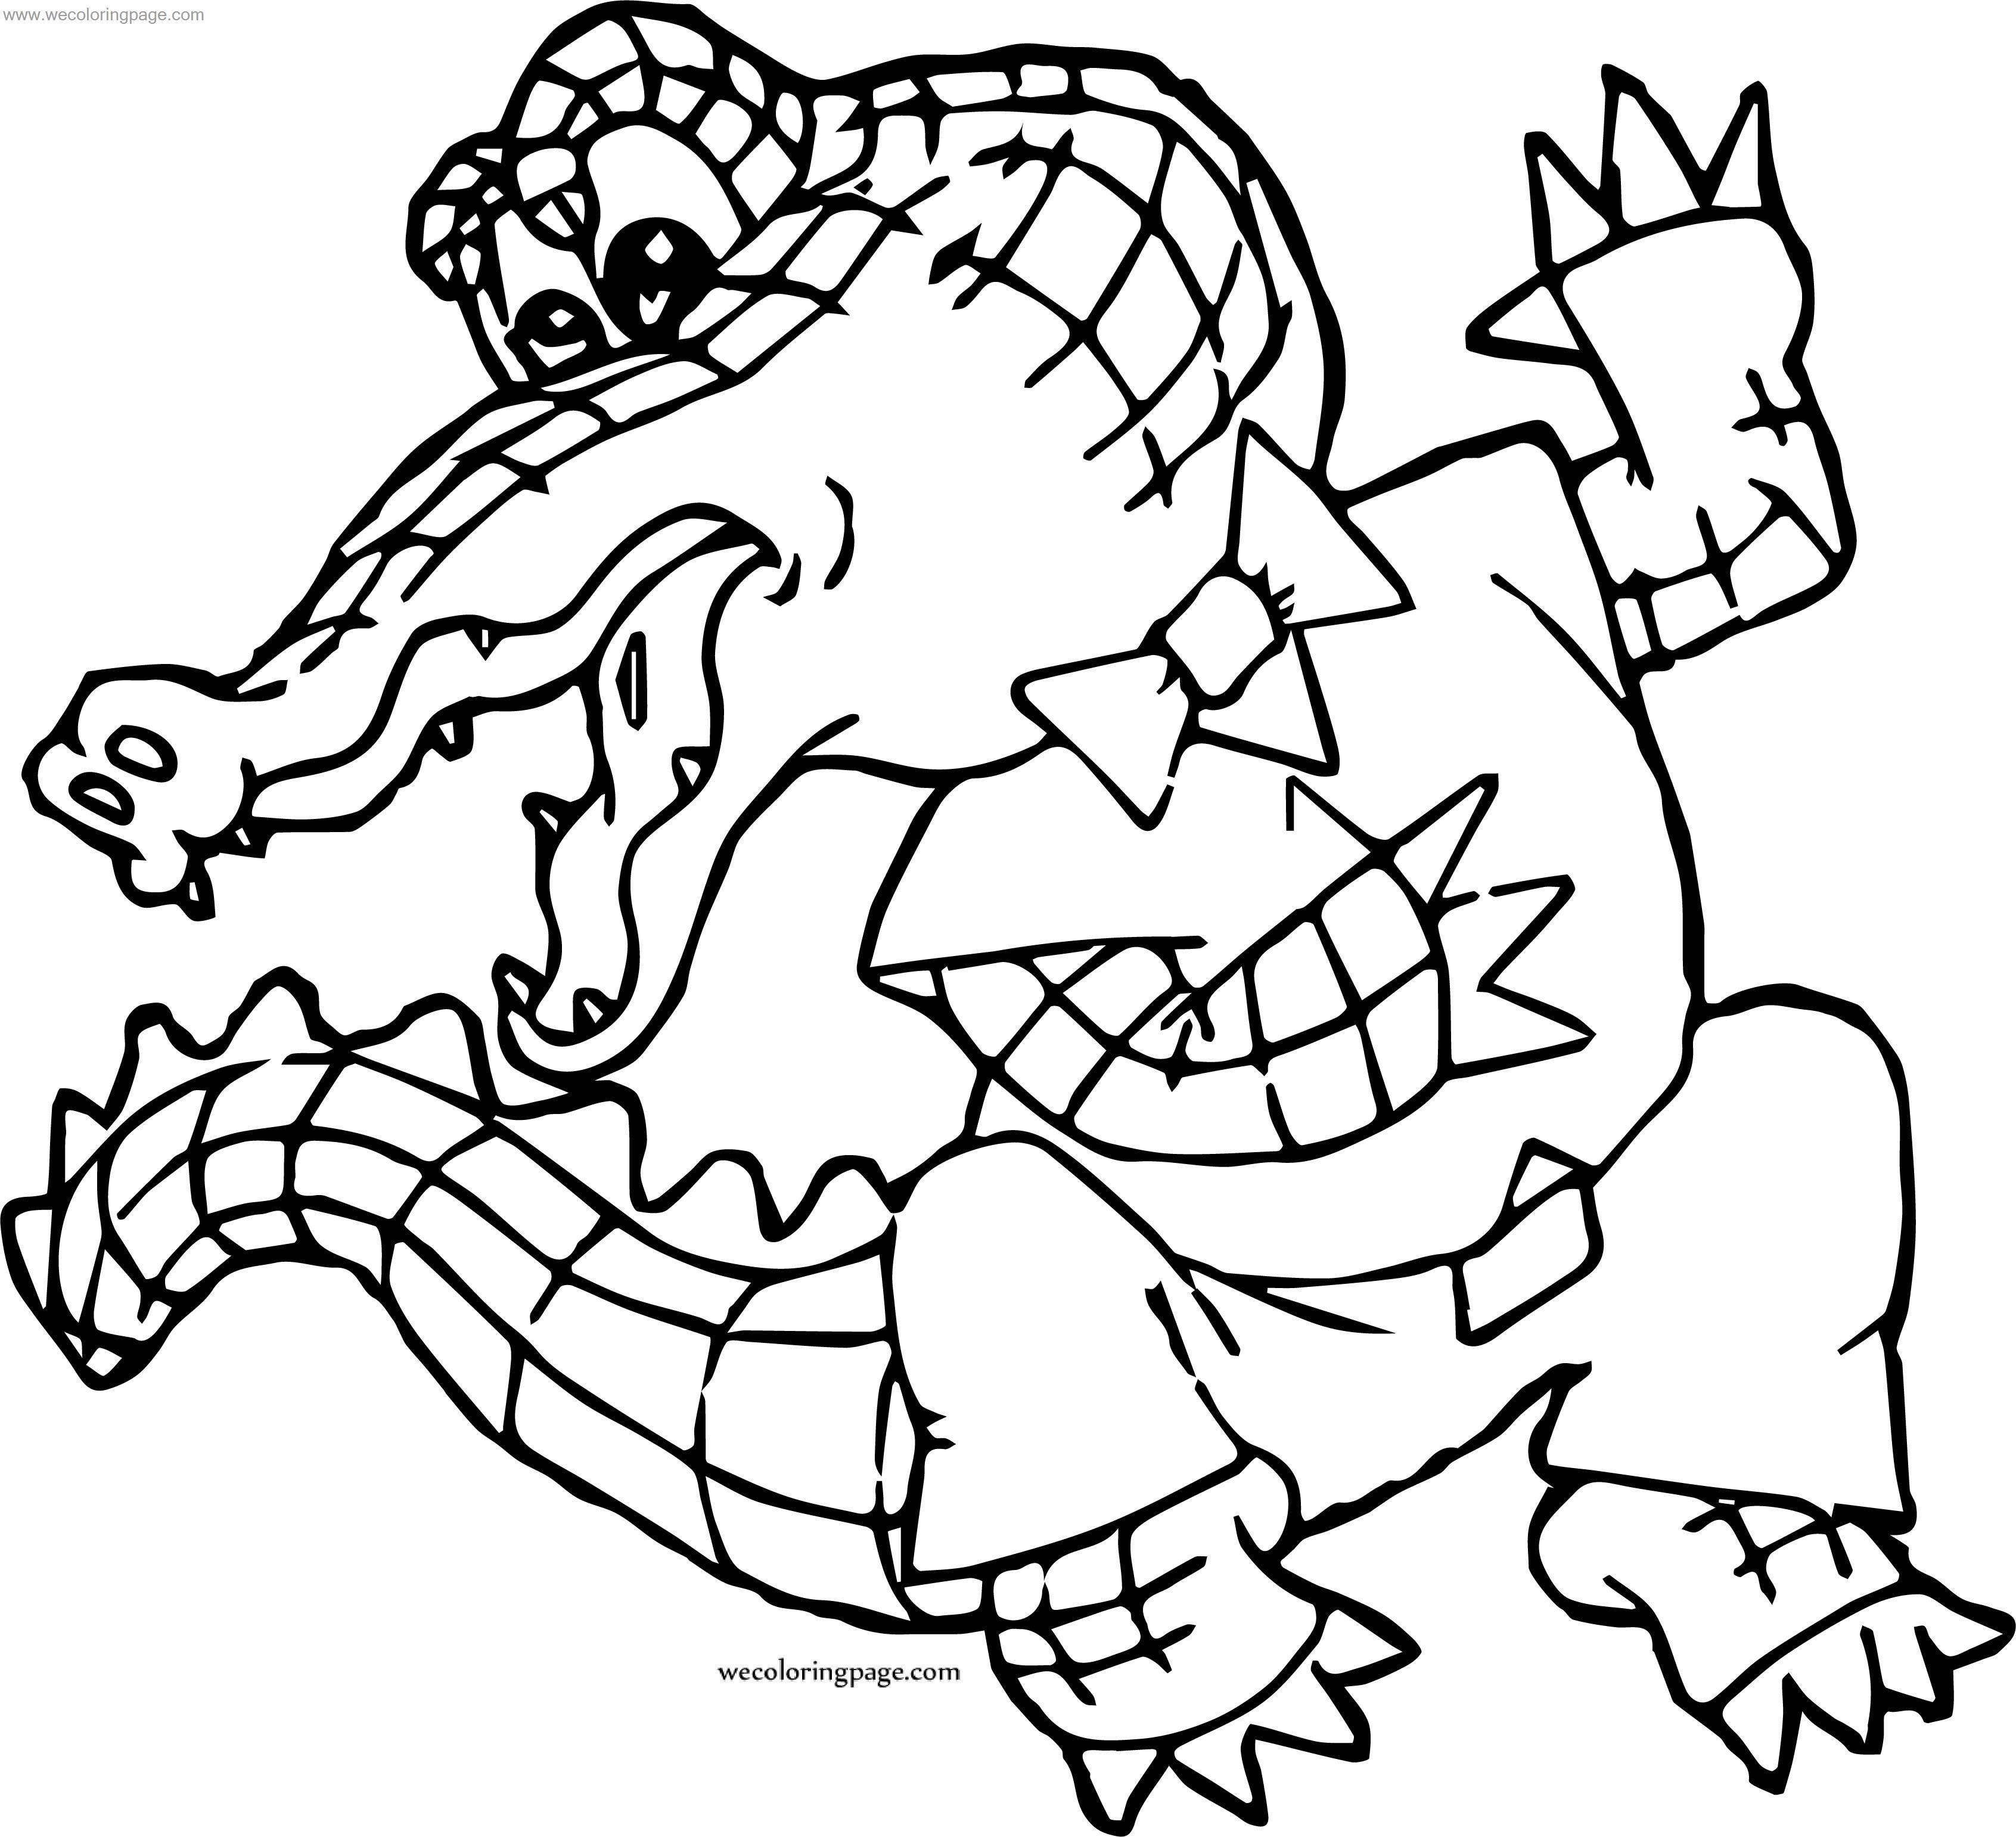 Want Crocodile Alligator Coloring Page